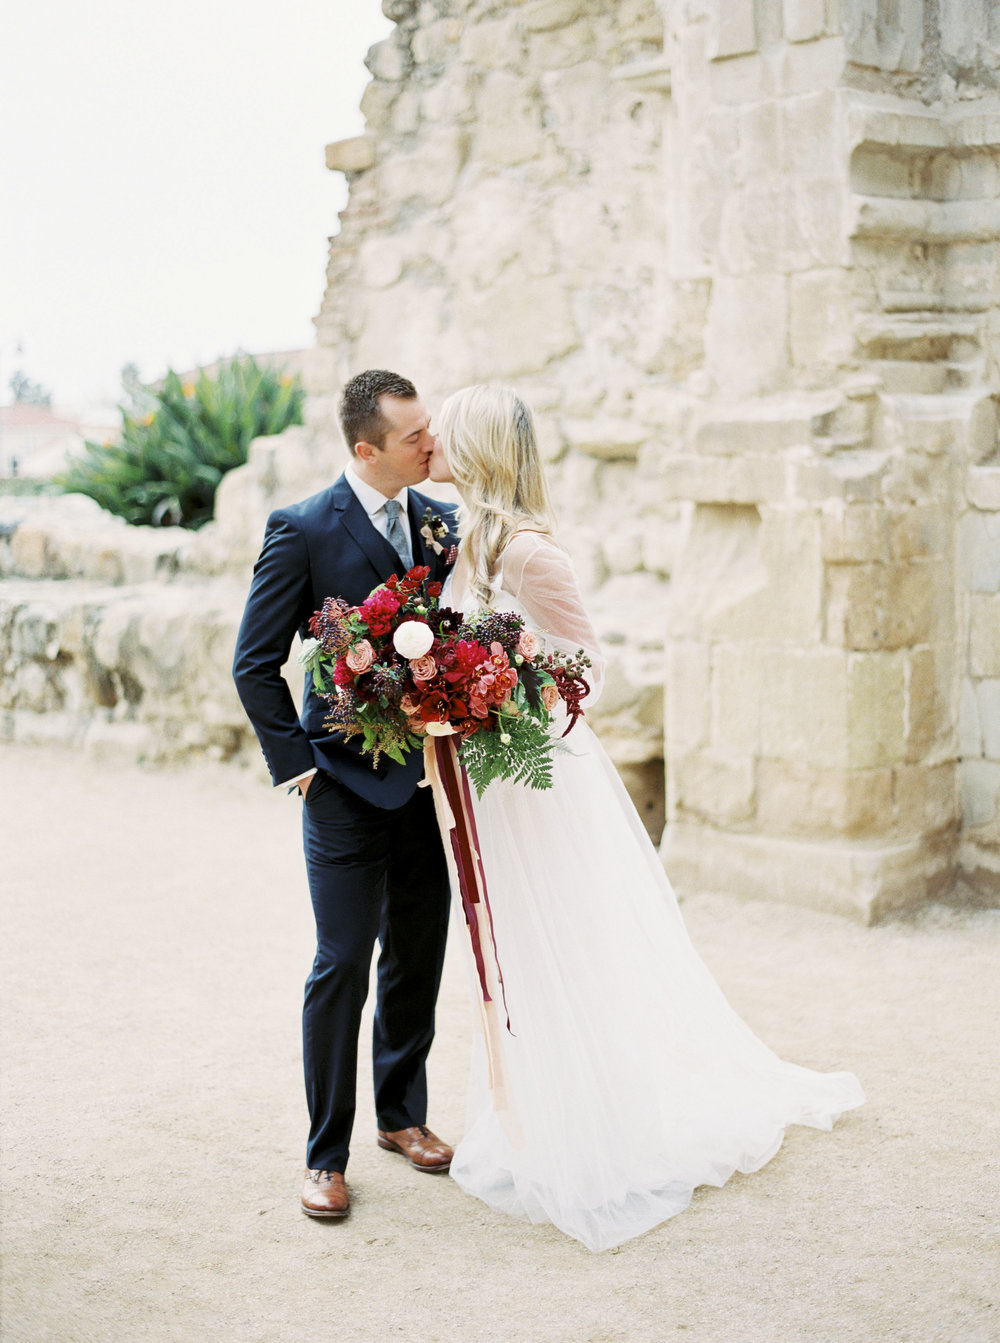 San Juan Capistrano Wedding, Amanda Lenhardt Photography, California wedding photographer